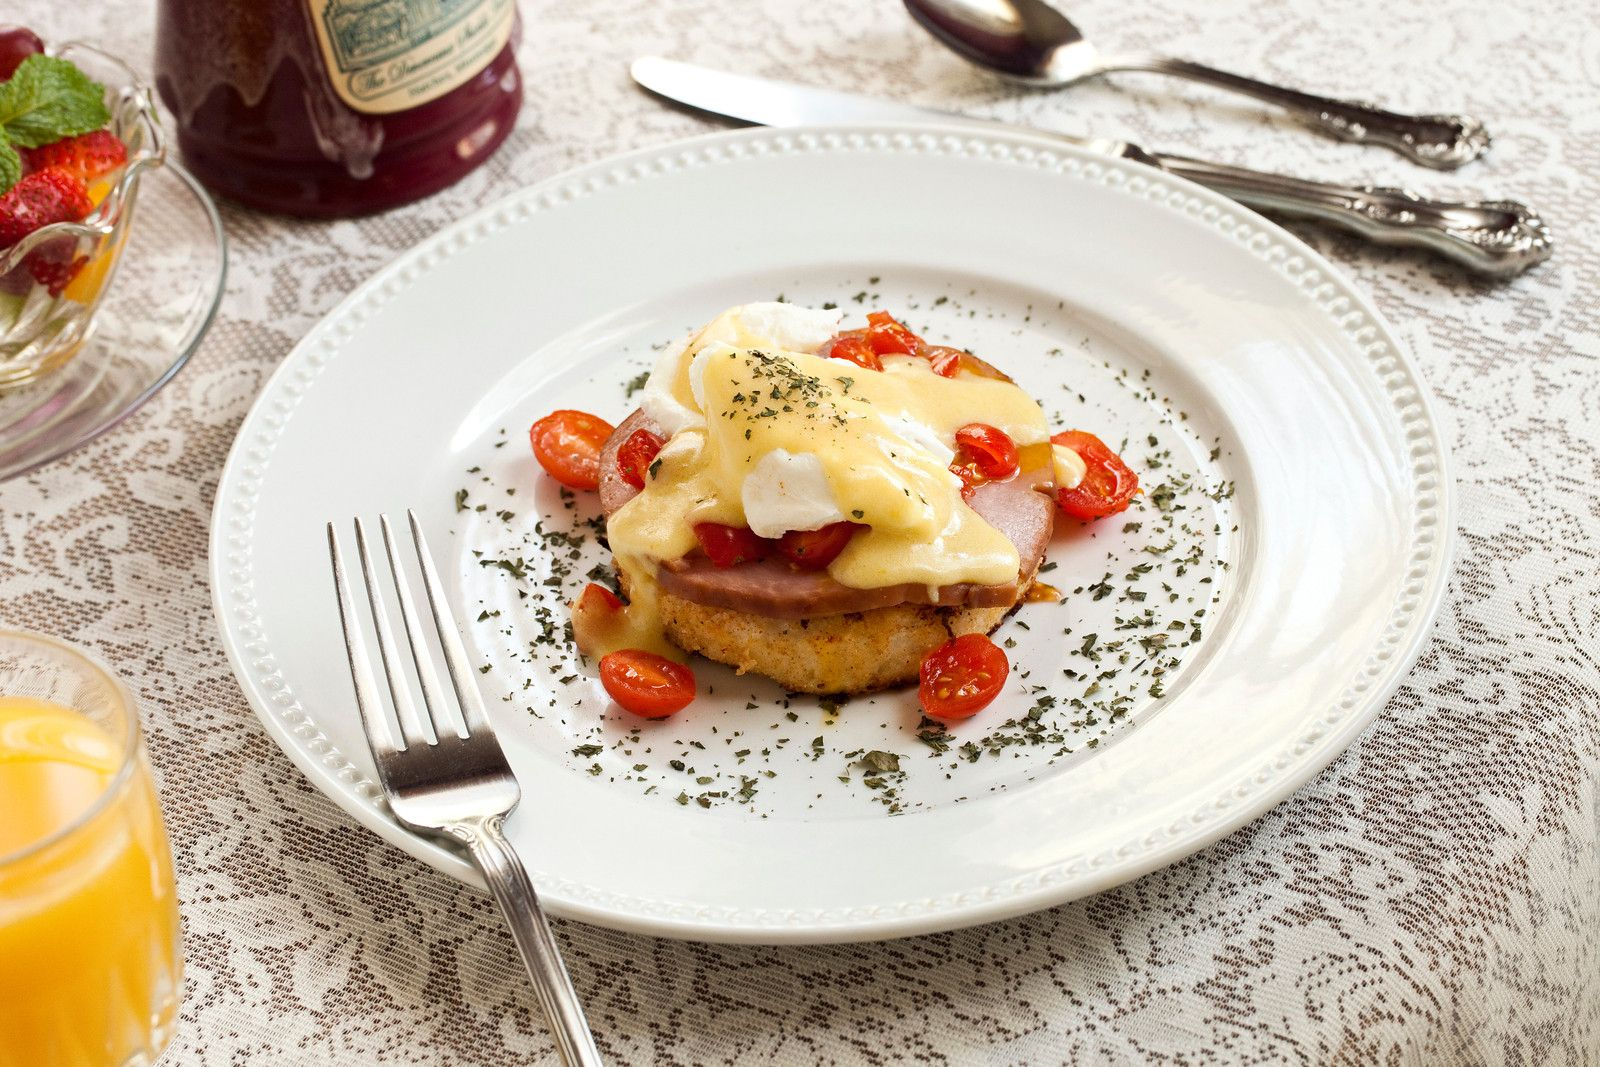 Enjoy a full southern breakfast each morning at our